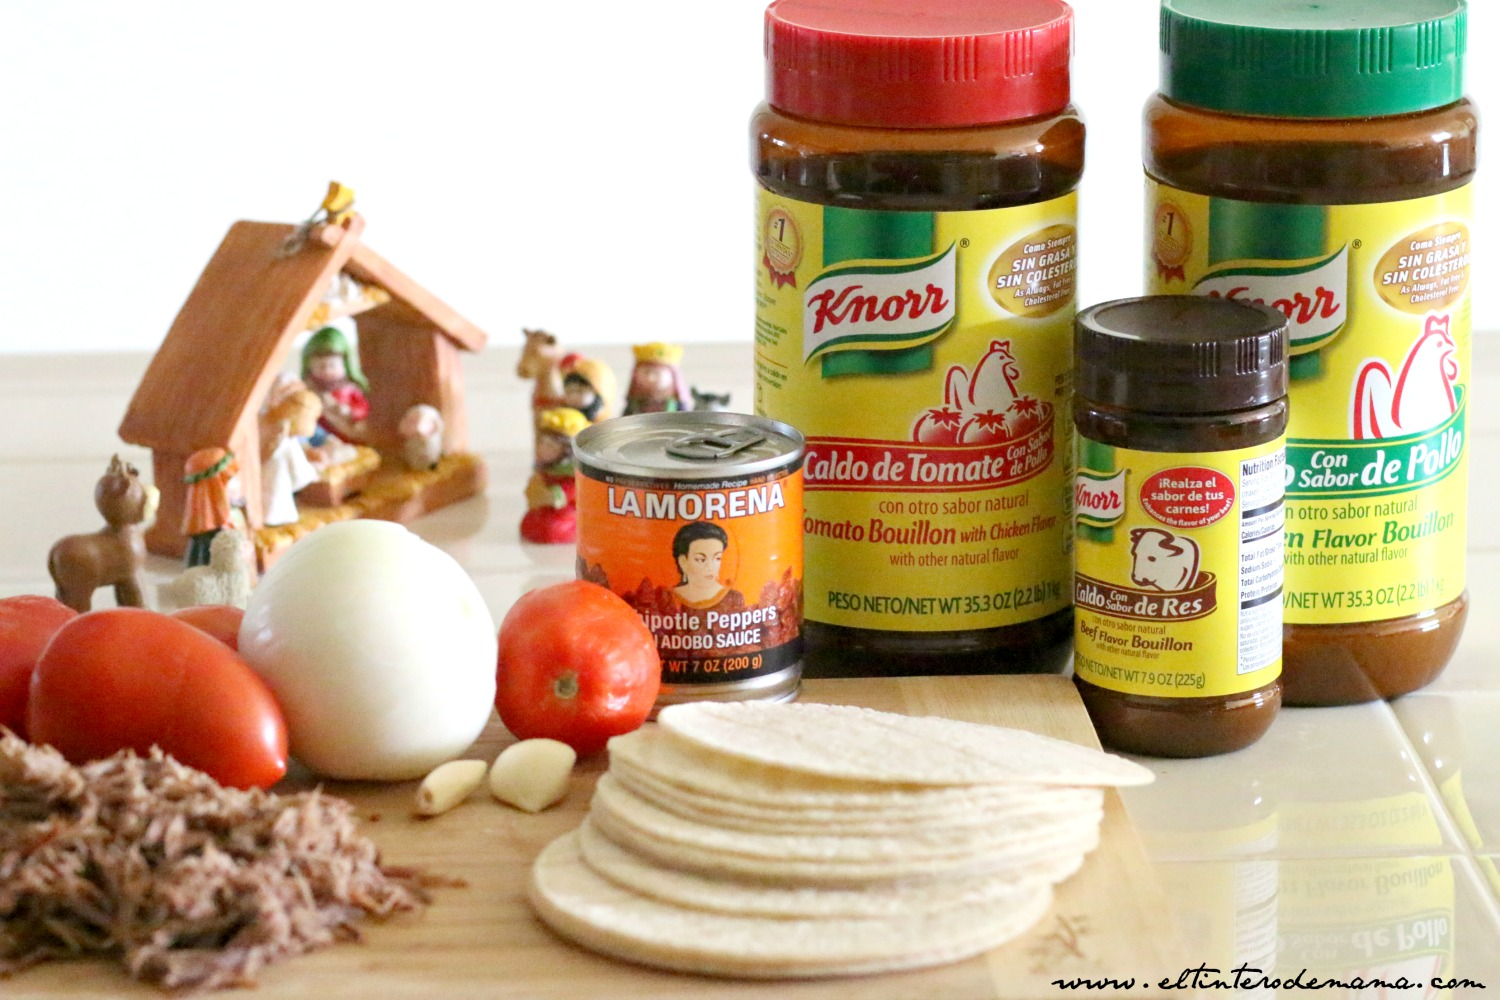 Celebrate-CHRISTMAS-with-La-Morena-and-Knorr-at-Walmart-ColectivaLatina